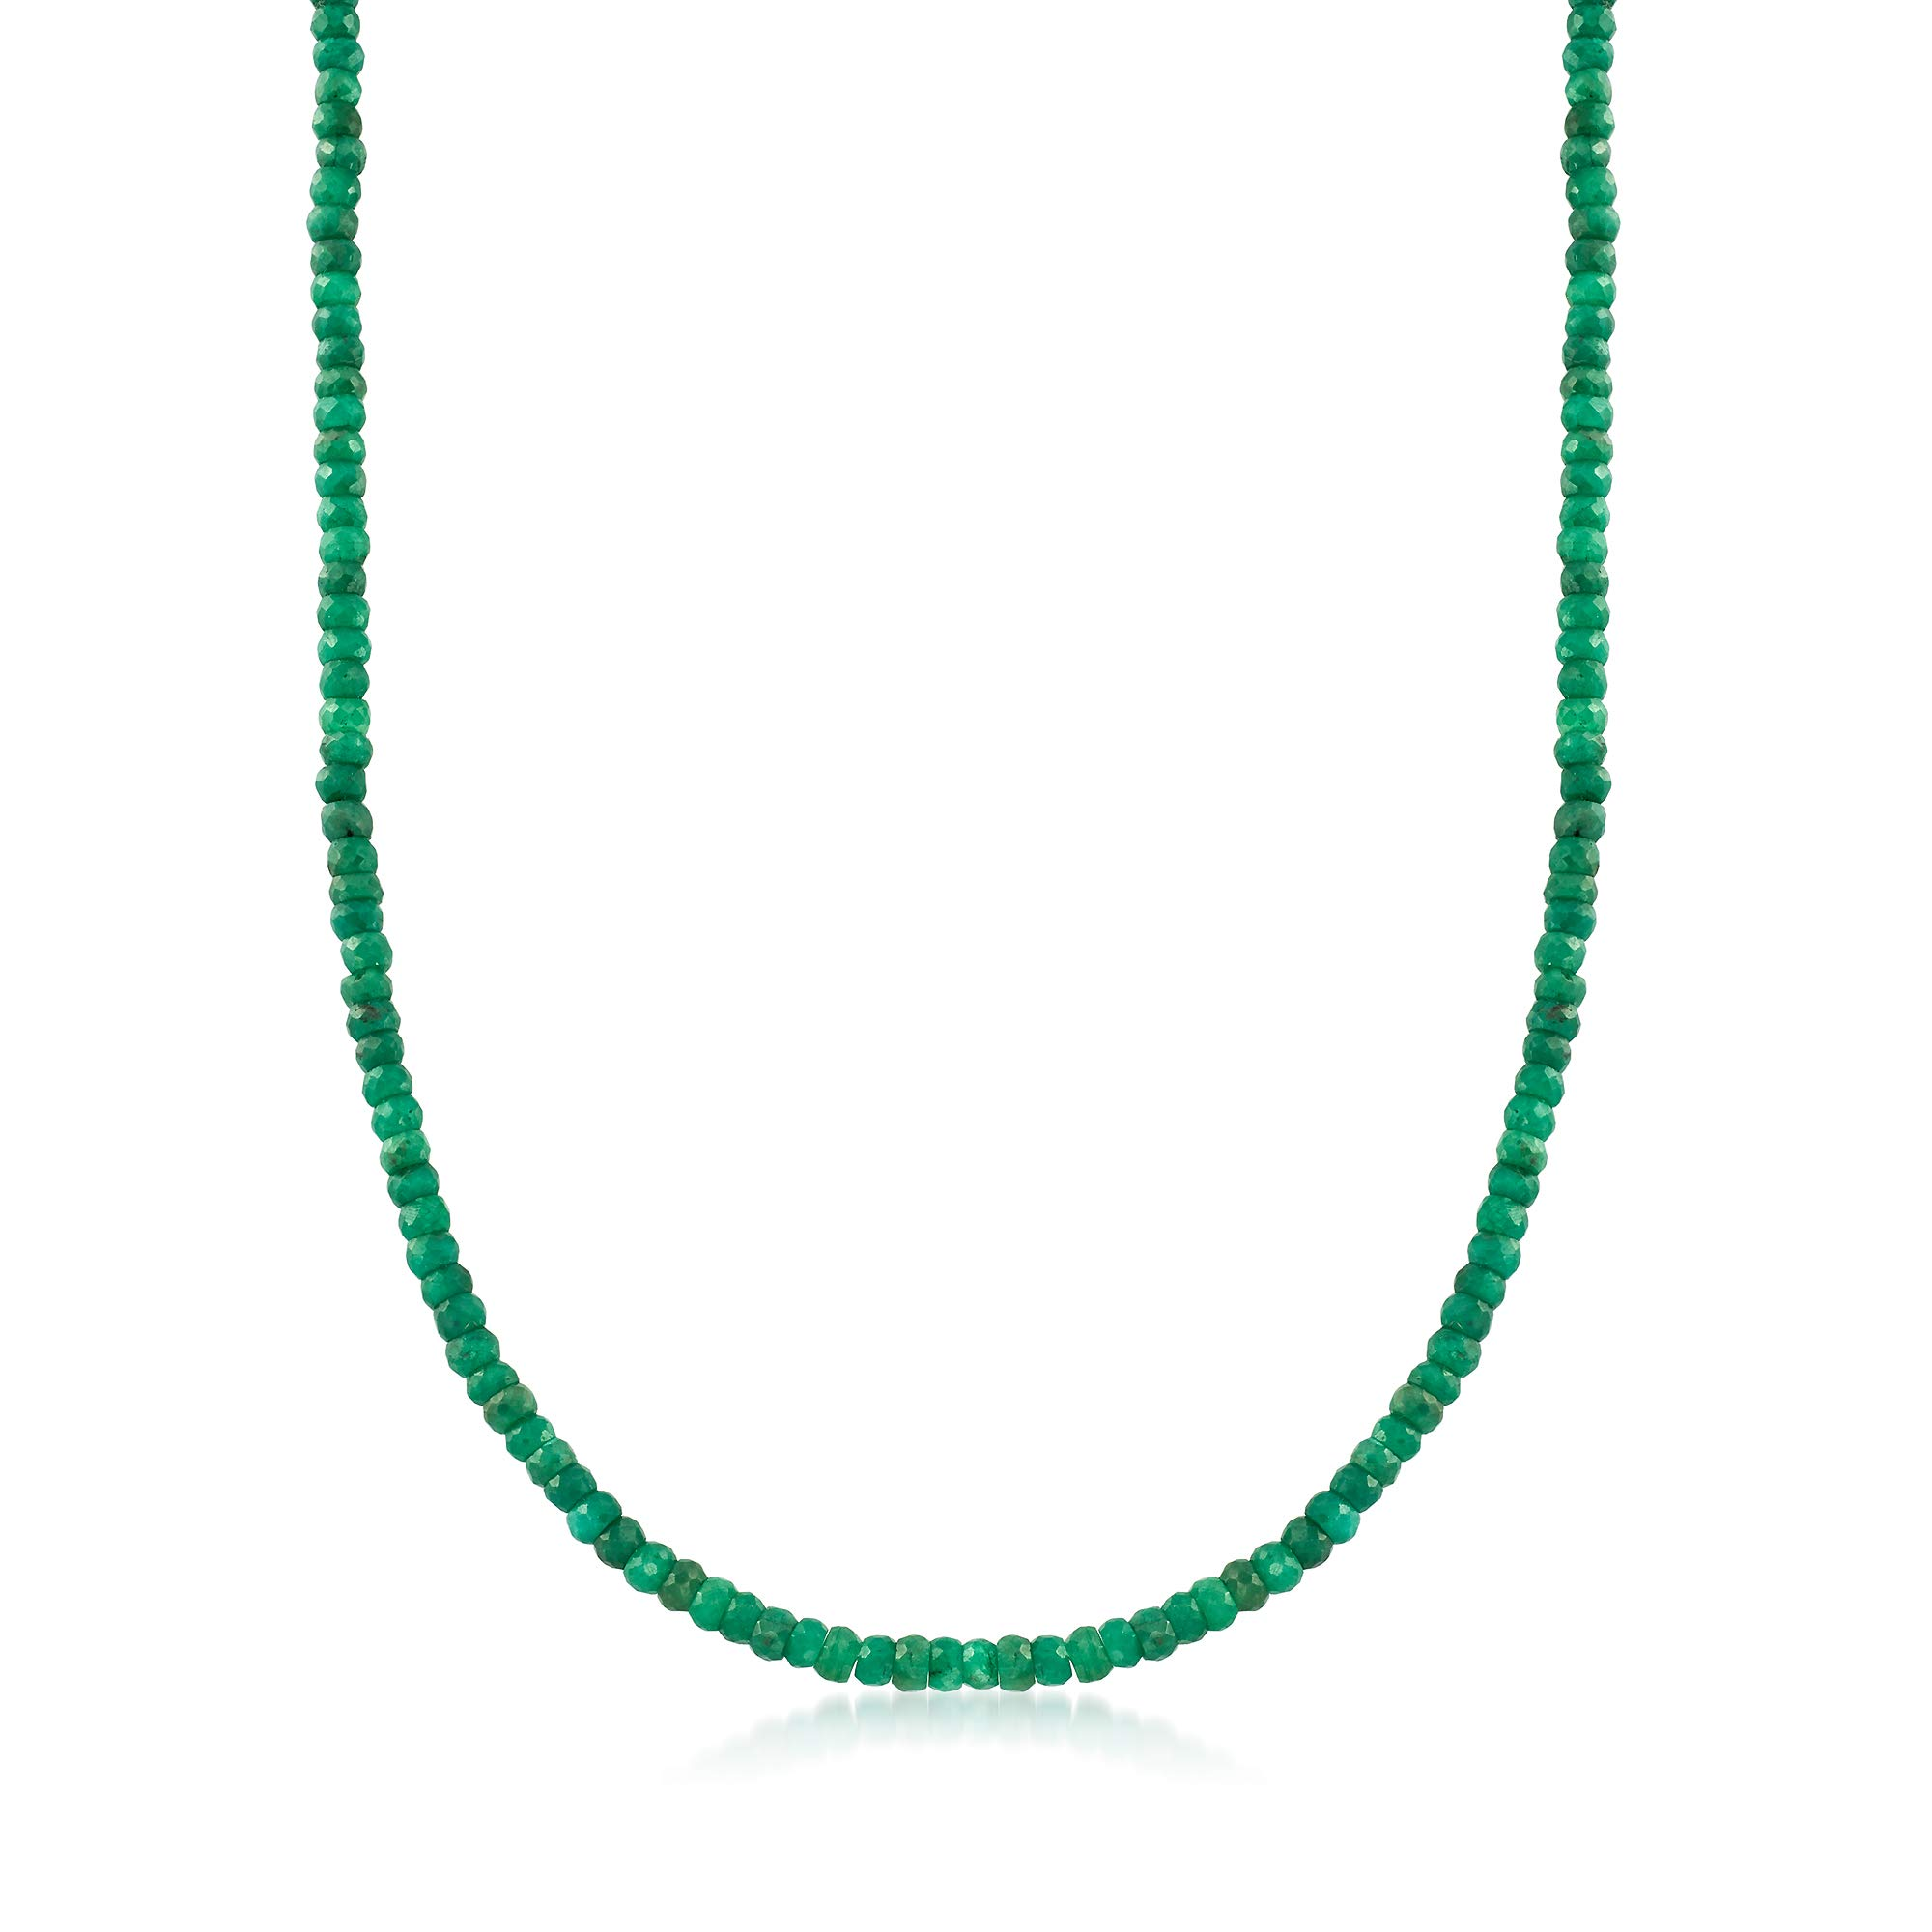 Ross-Simons 58.50 ct. t.w. Emerald Bead Necklace in 14kt Yellow Gold by Ross-Simons